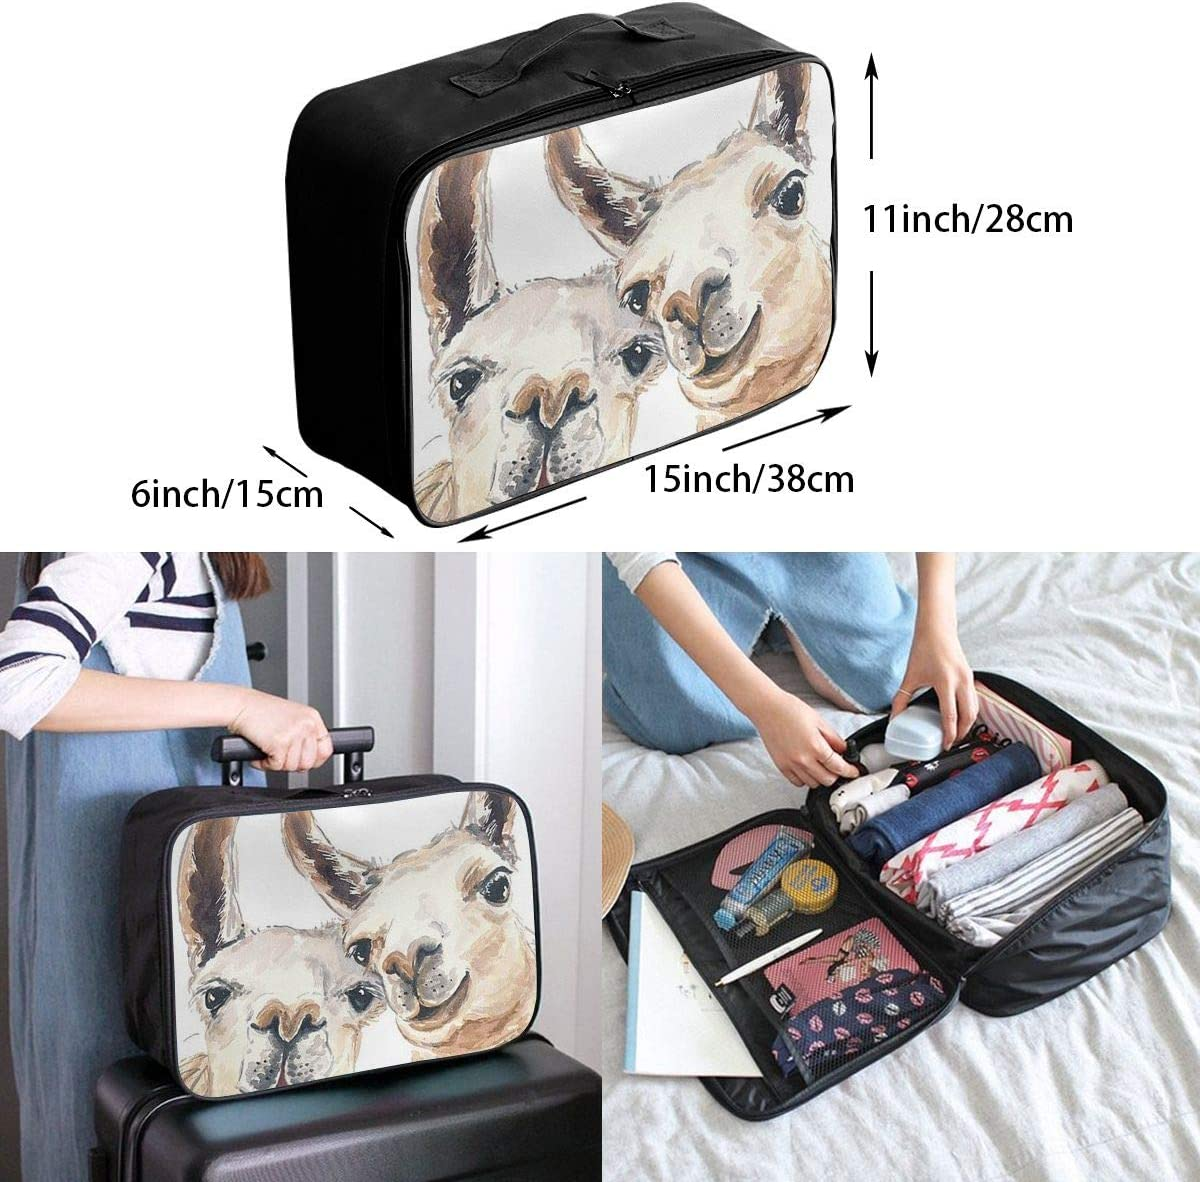 Llama Brothers Travel Carry-on Luggage Weekender Bag Overnight Tote Flight Duffel In Trolley Handle